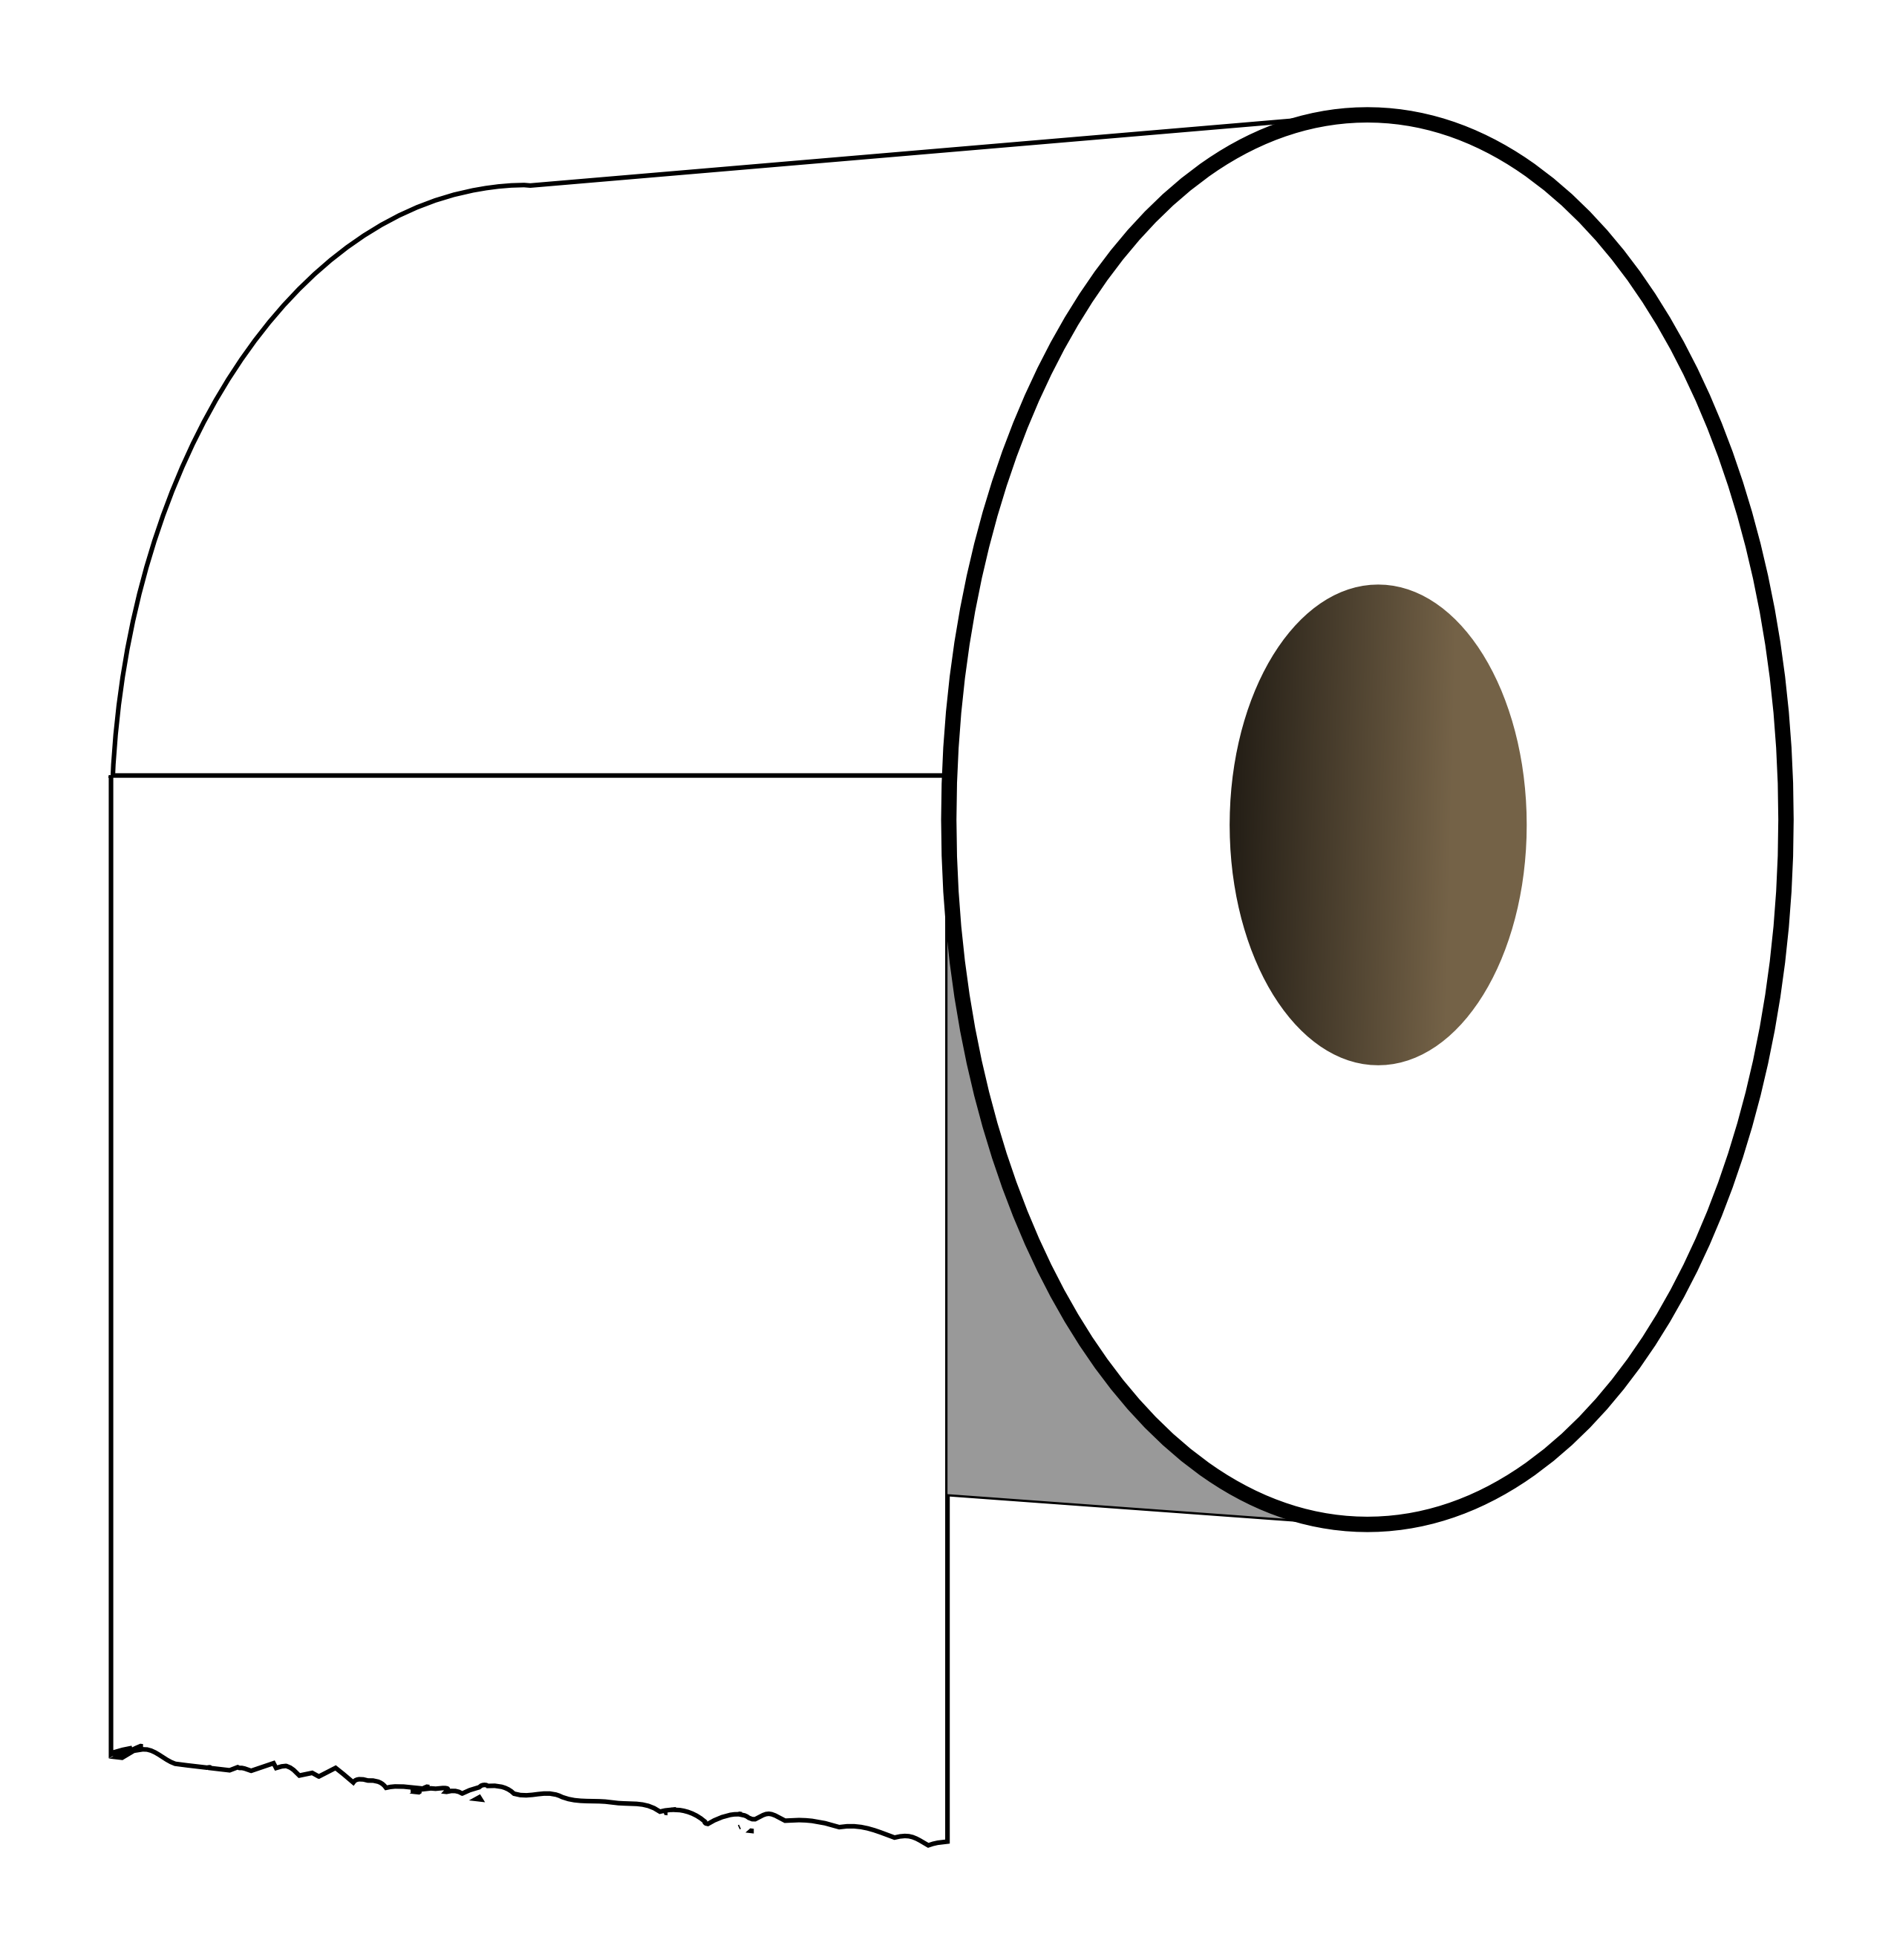 Clip art cliparts co. Furniture clipart toilet